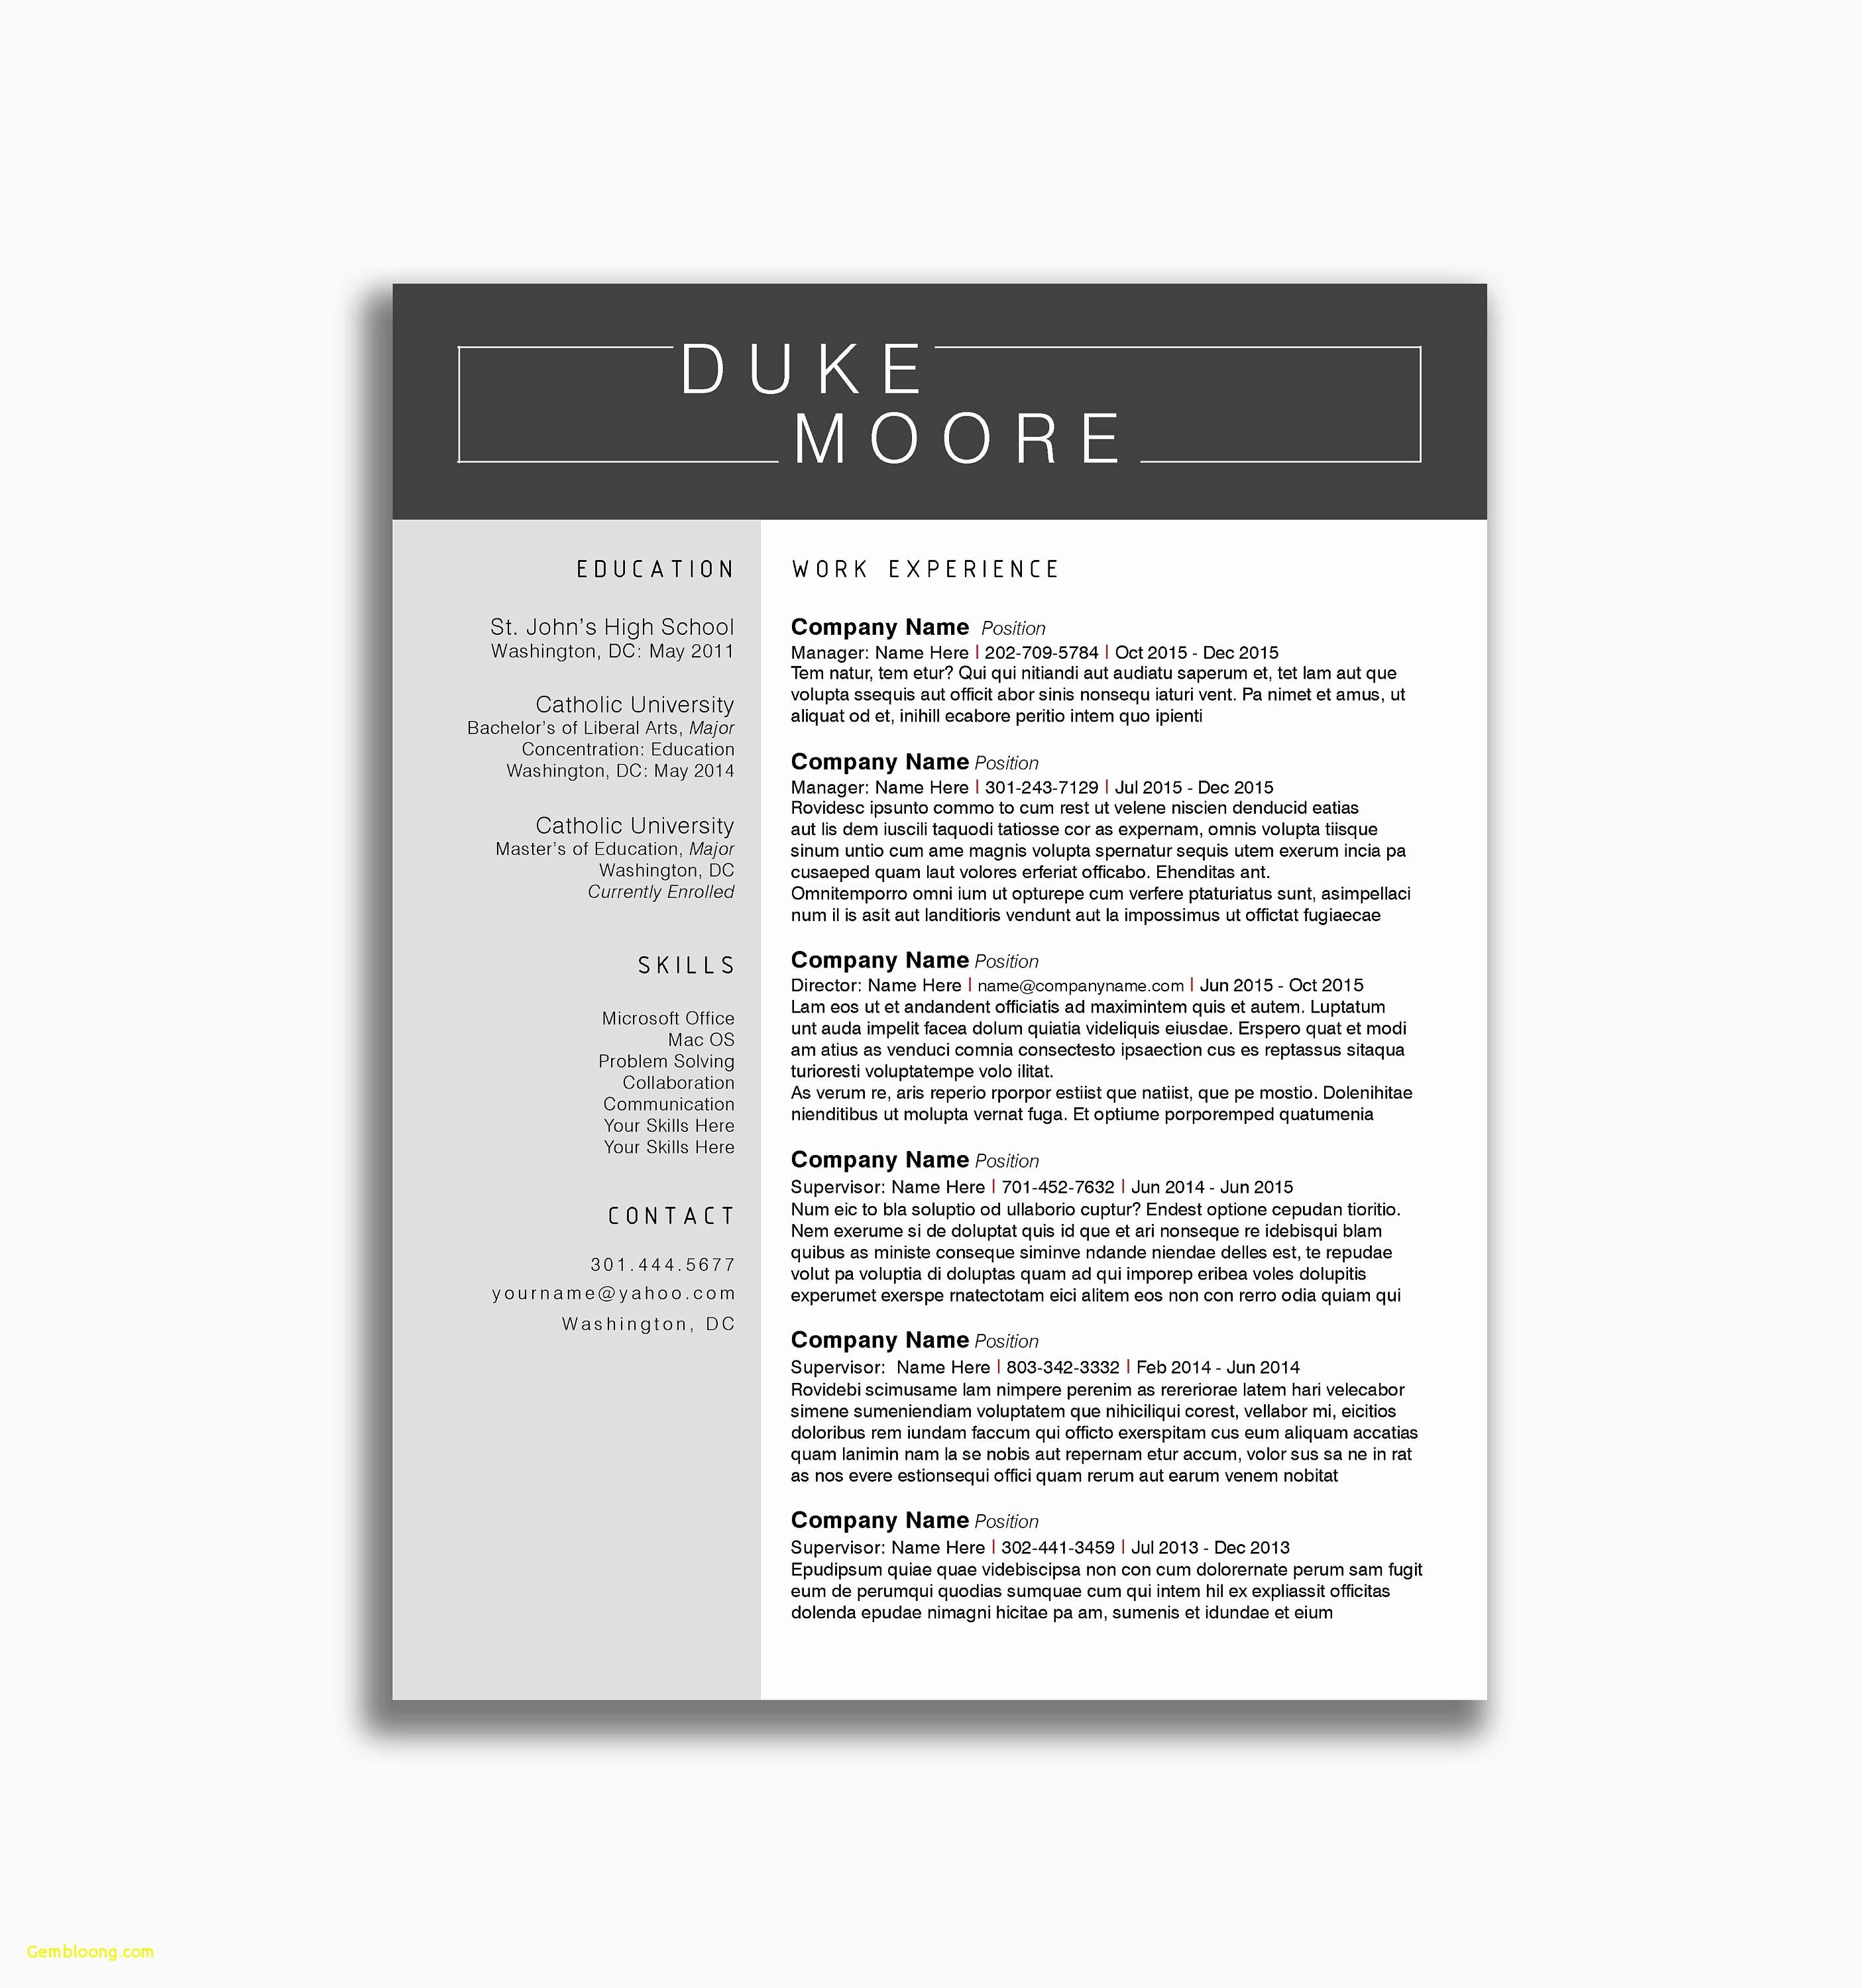 Attorney Resume Template - Cv Template Ideas Elegant Download Resume Template Beautiful Law